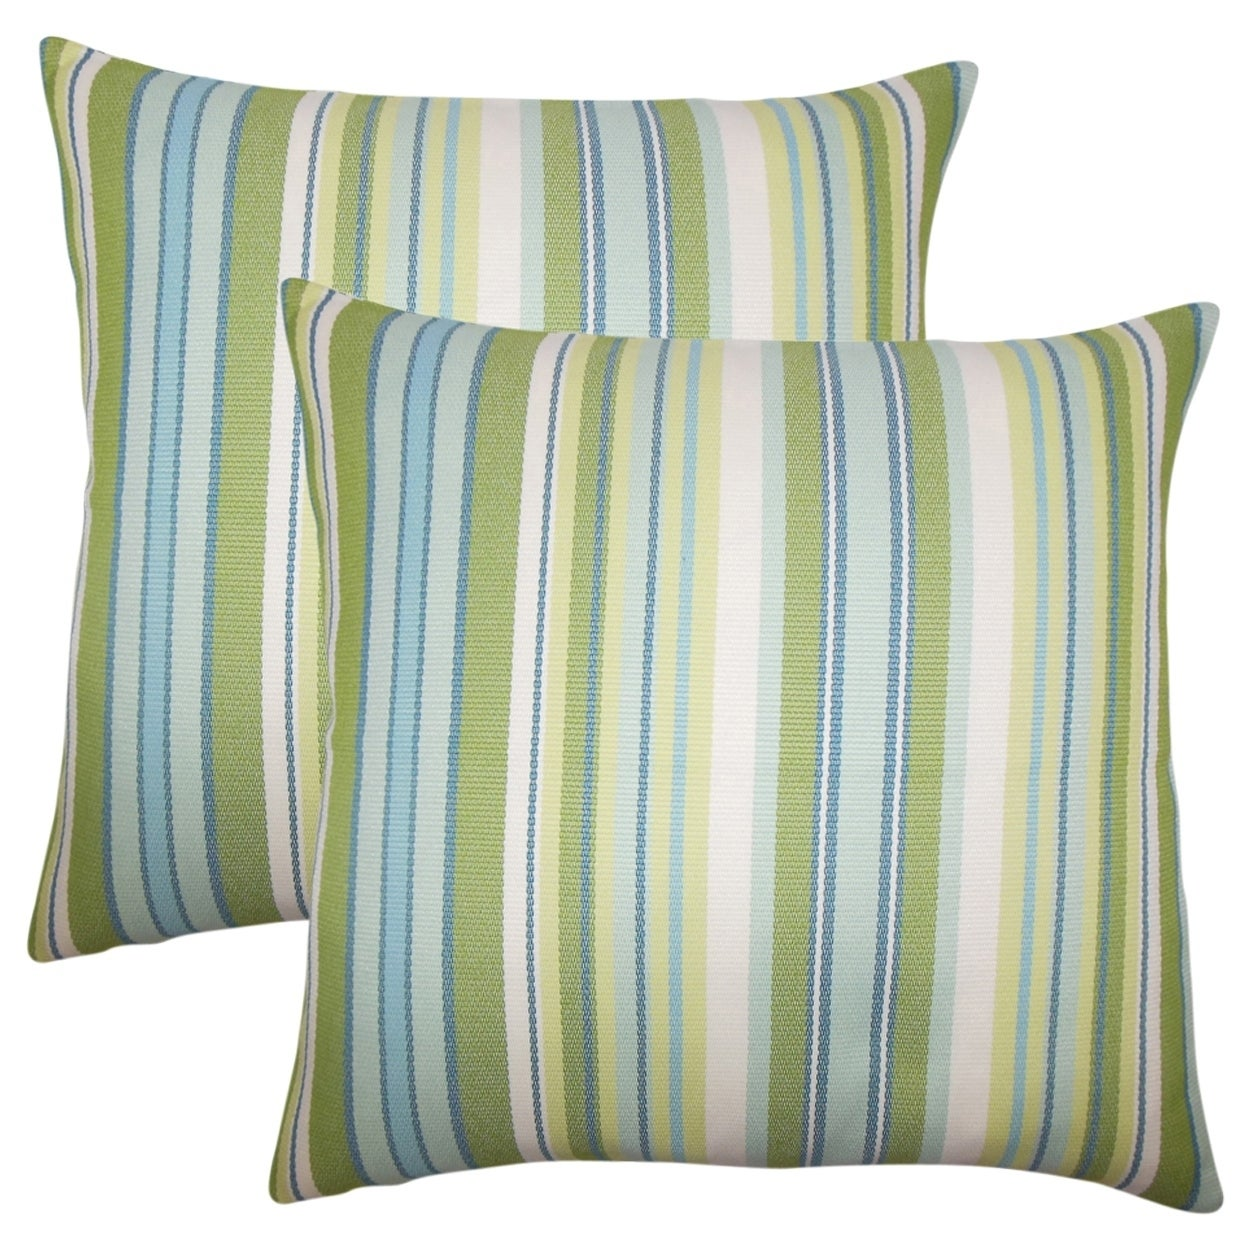 Set Of 2 Urbaine Striped Throw Pillows In Blue Green Overstock 18154694